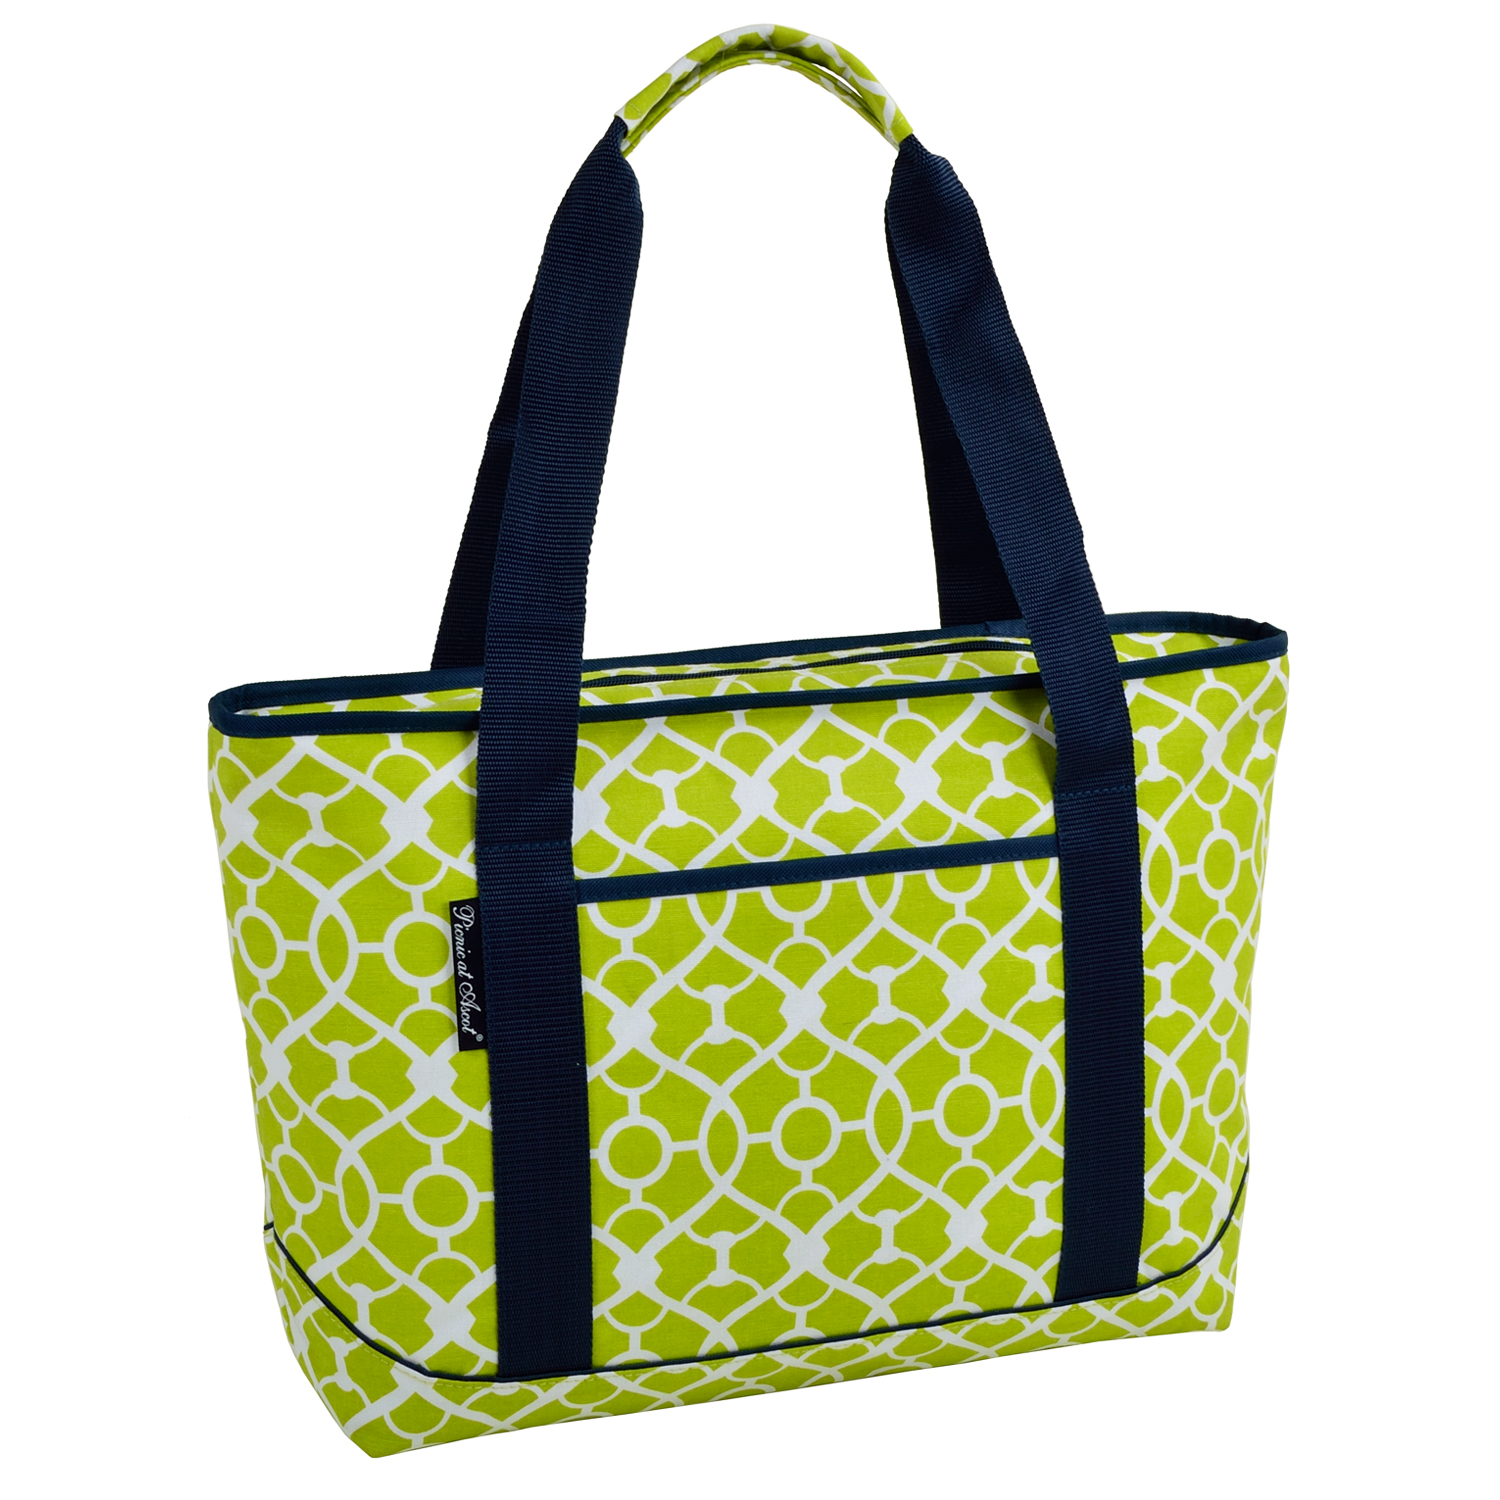 Picnic At Ascot Large Insulated Cooler Bag 24 Can Tote